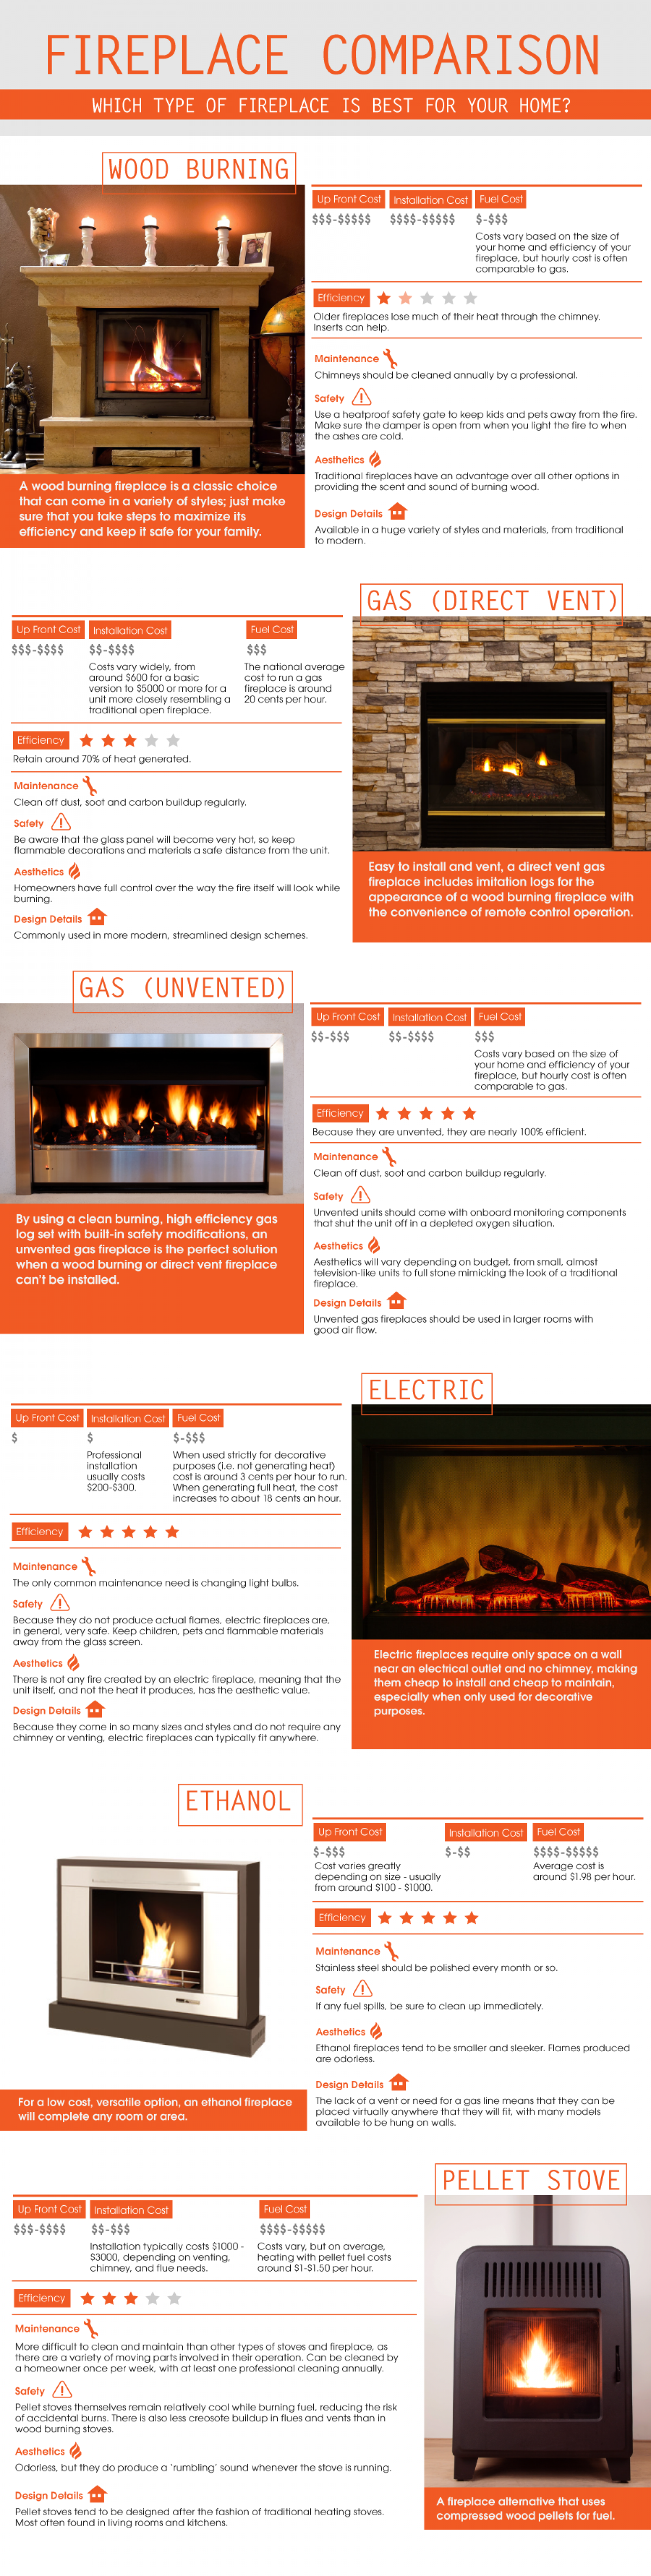 A Comparison of Fireplace Options for Home Heating Infographic